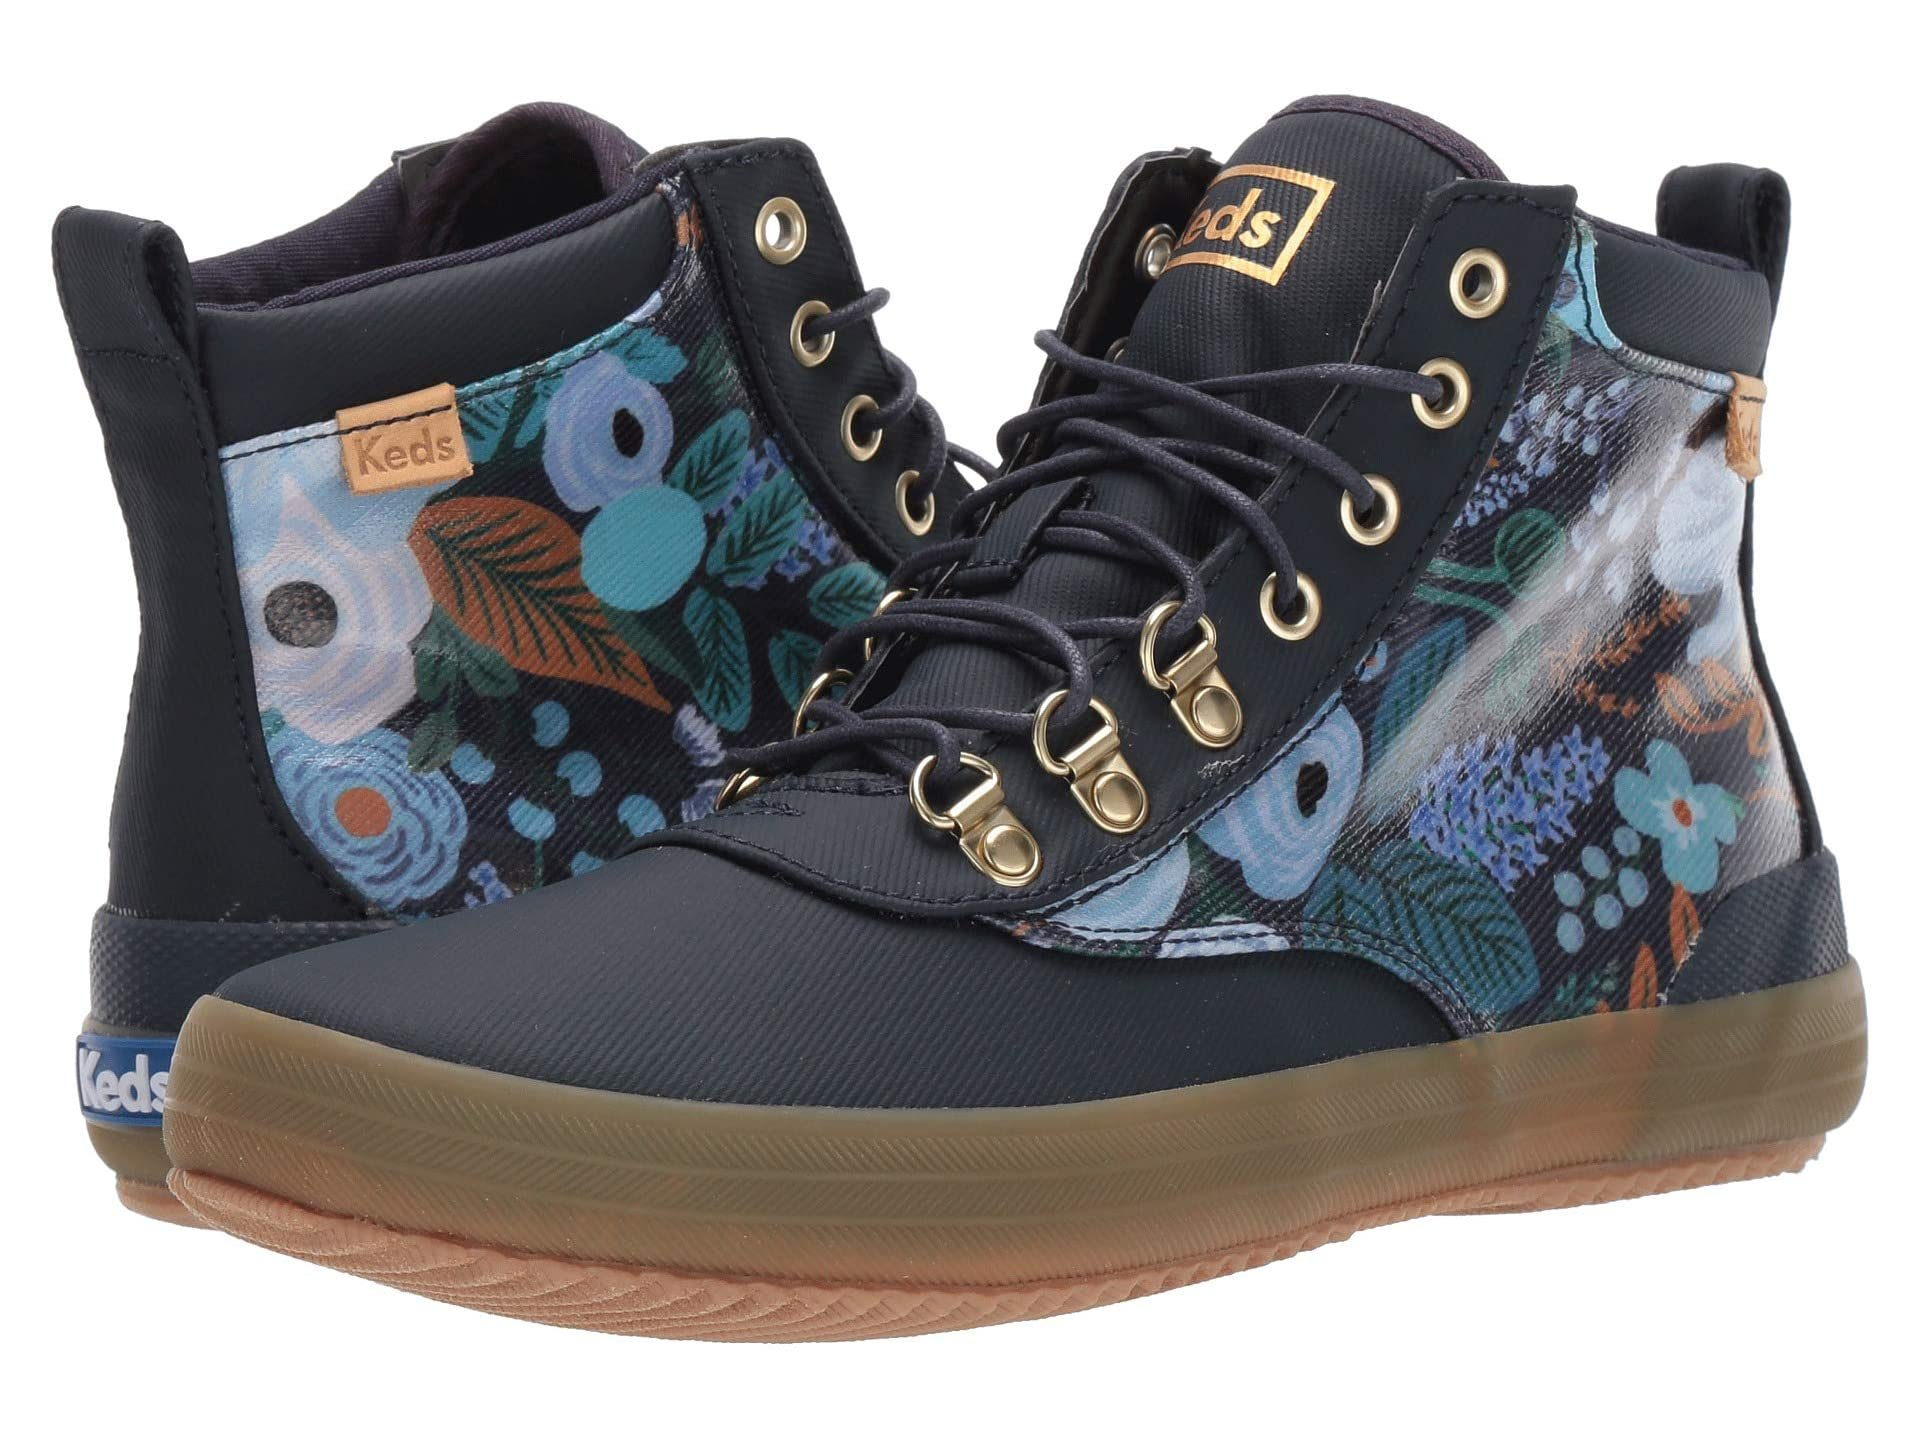 Keds Scout Boot Garden Party shoe